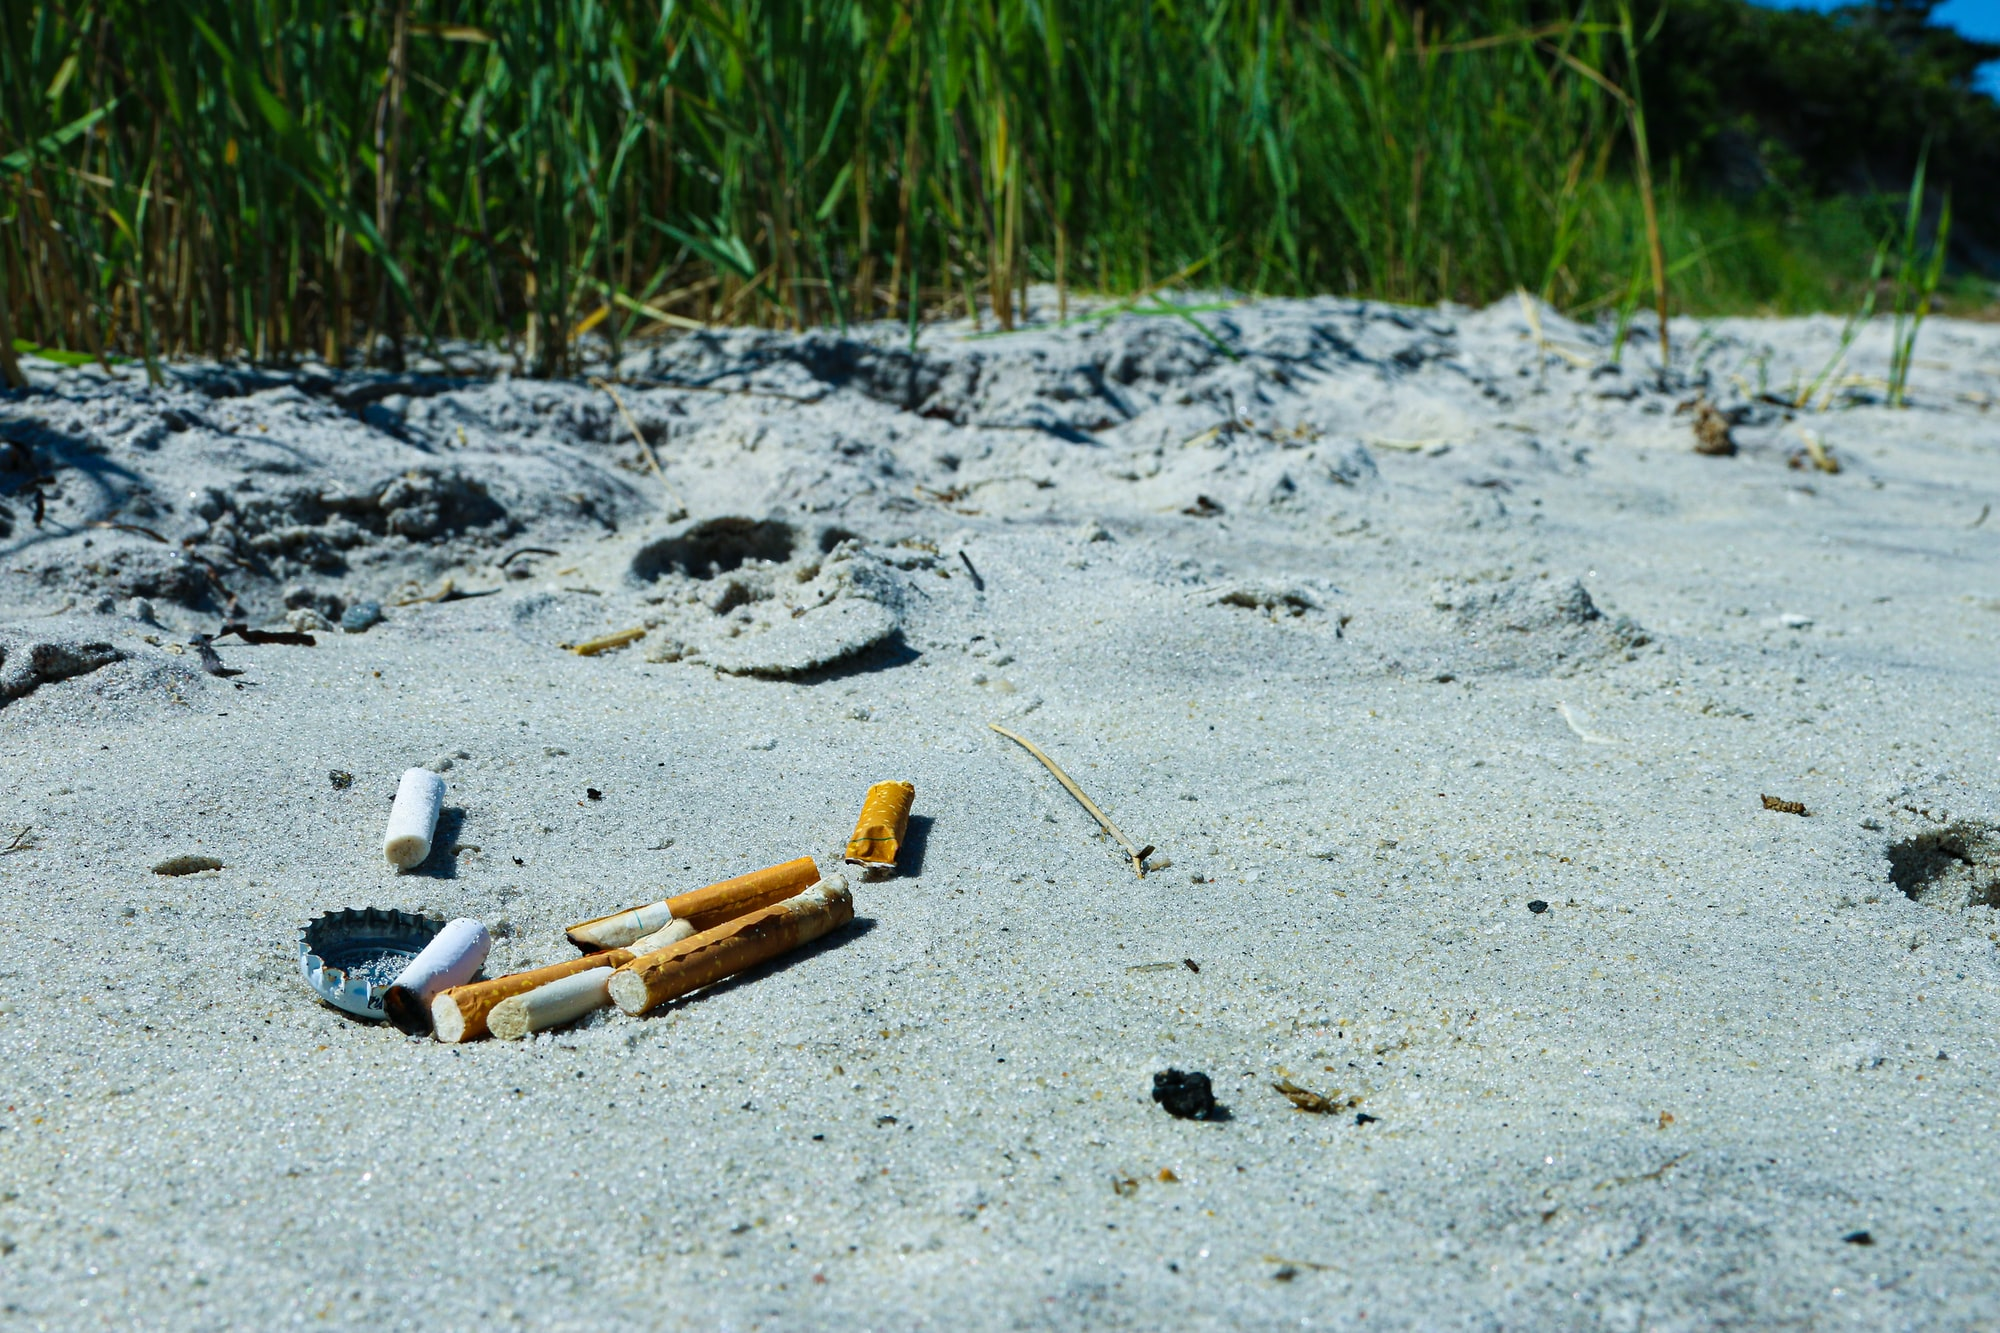 Cigarettes are bad for the planet